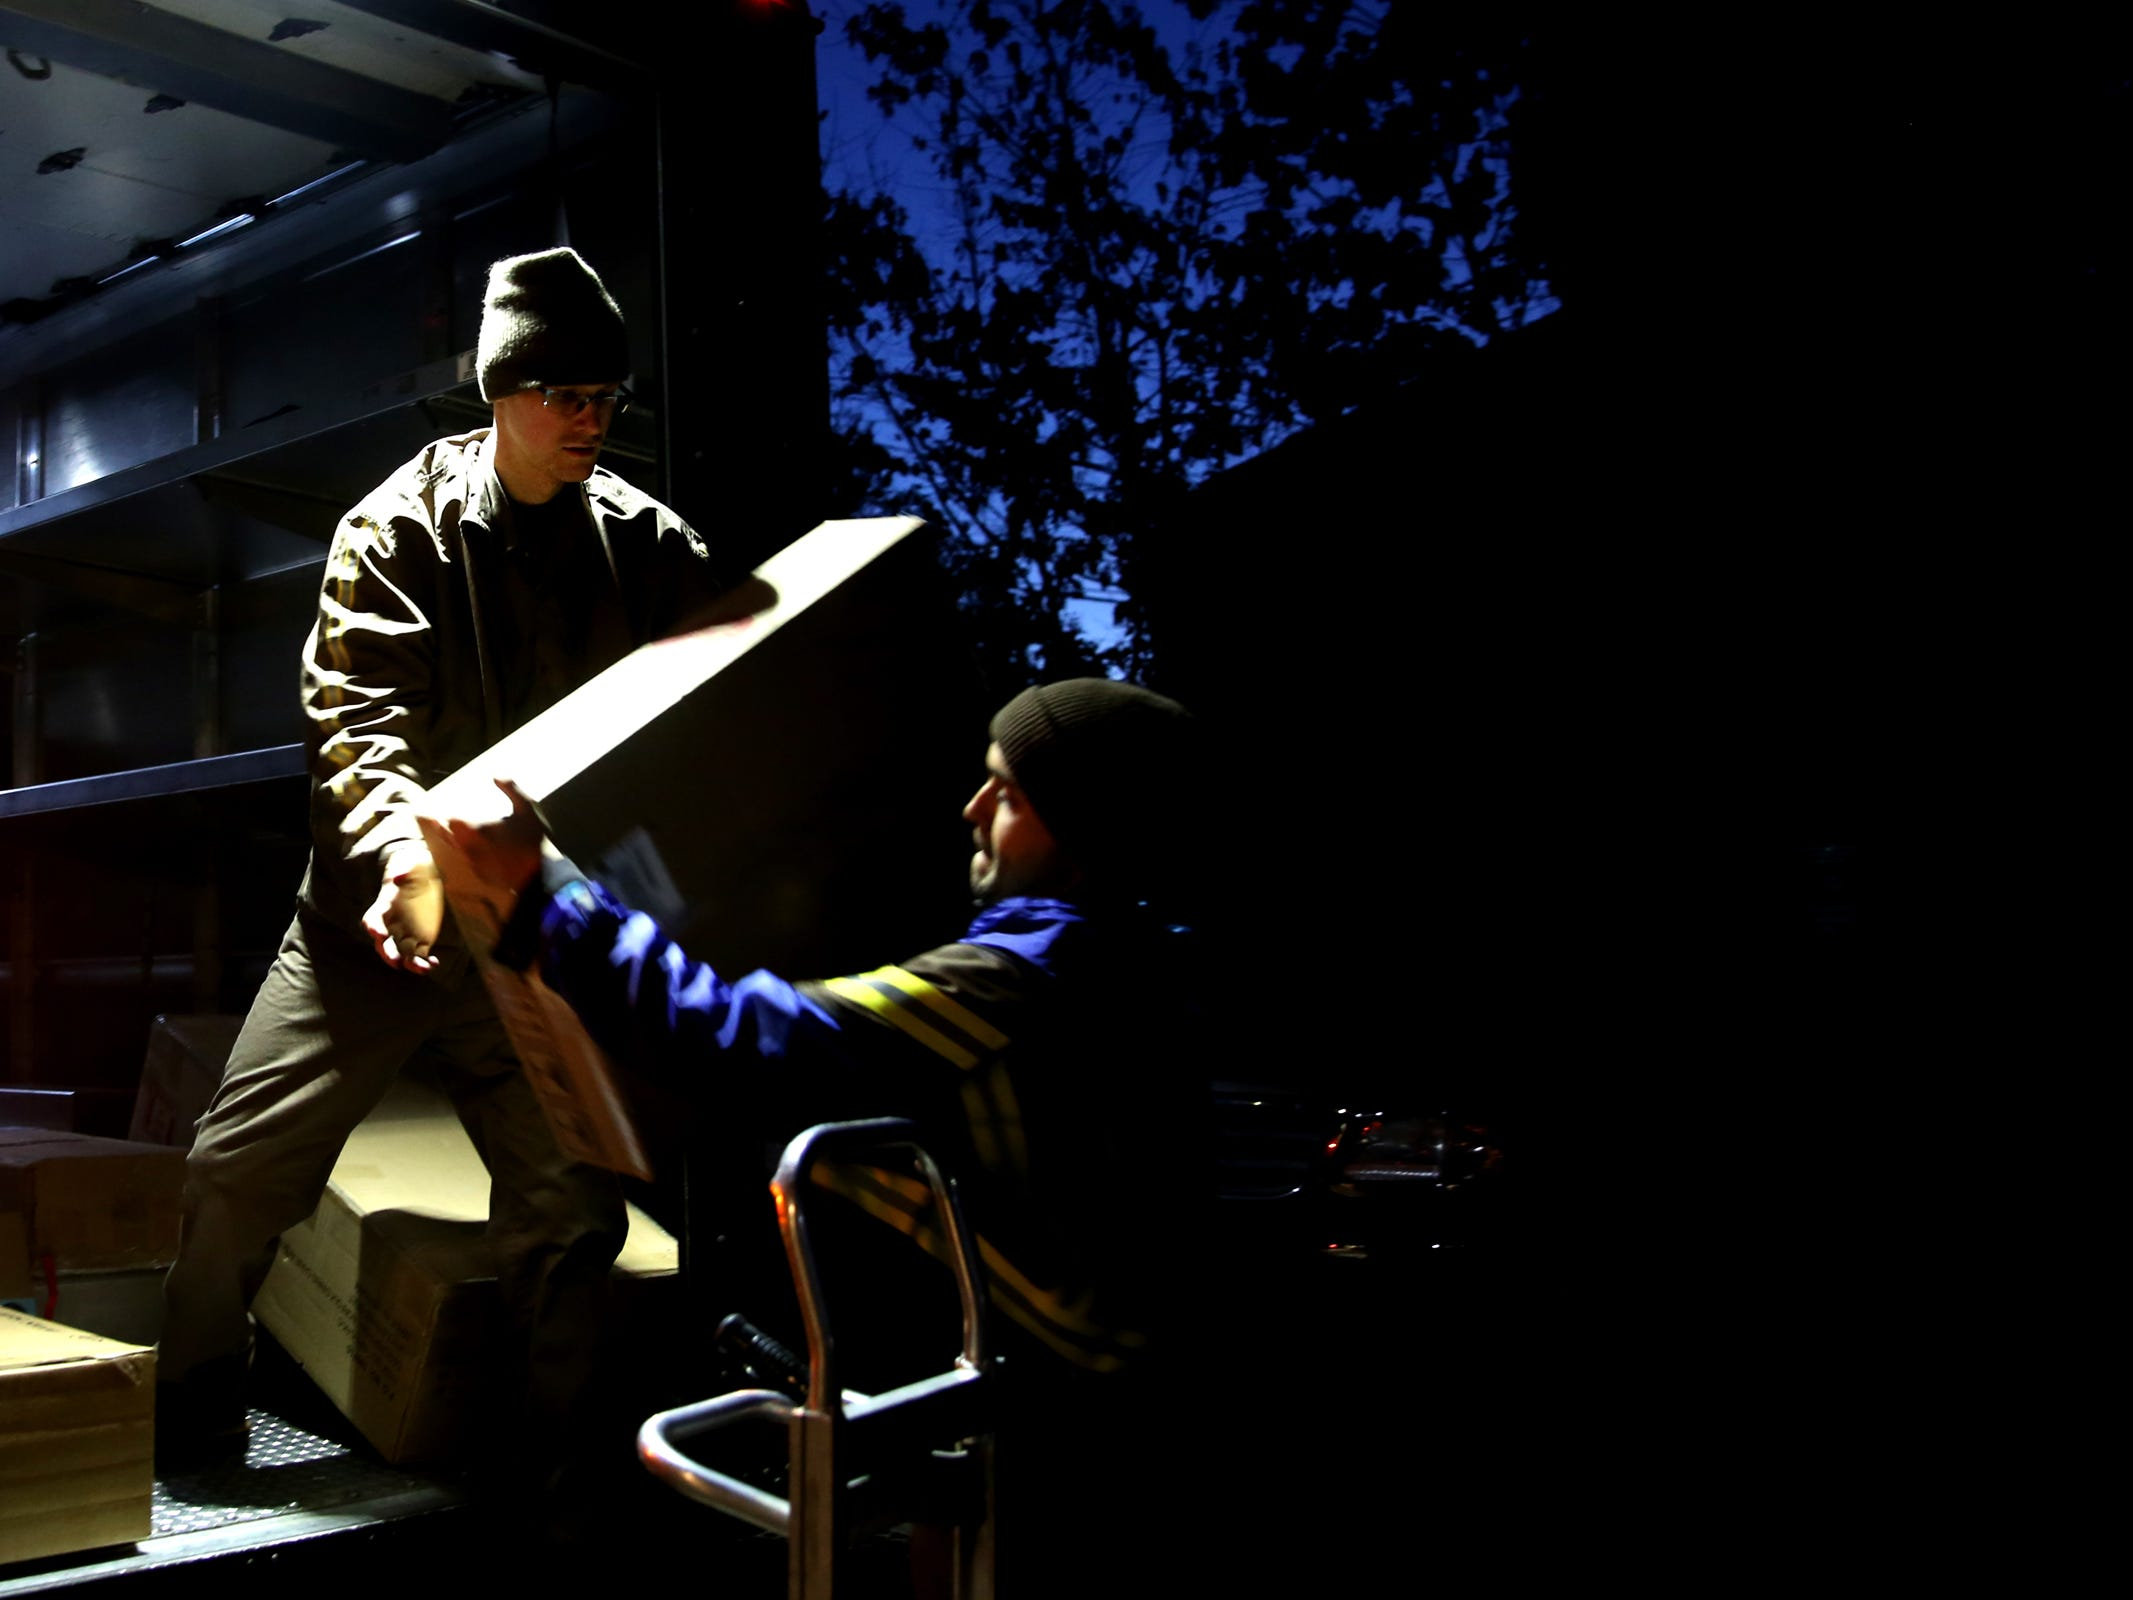 Fred Kapsoff, left, a UPS service provider, grabs a package from Jonnah Ferreiro, a seasonal employee, as they load a truck outside the UPS Store on Commercial St. SE in Salem on Tuesday, Dec. 4, 2018.